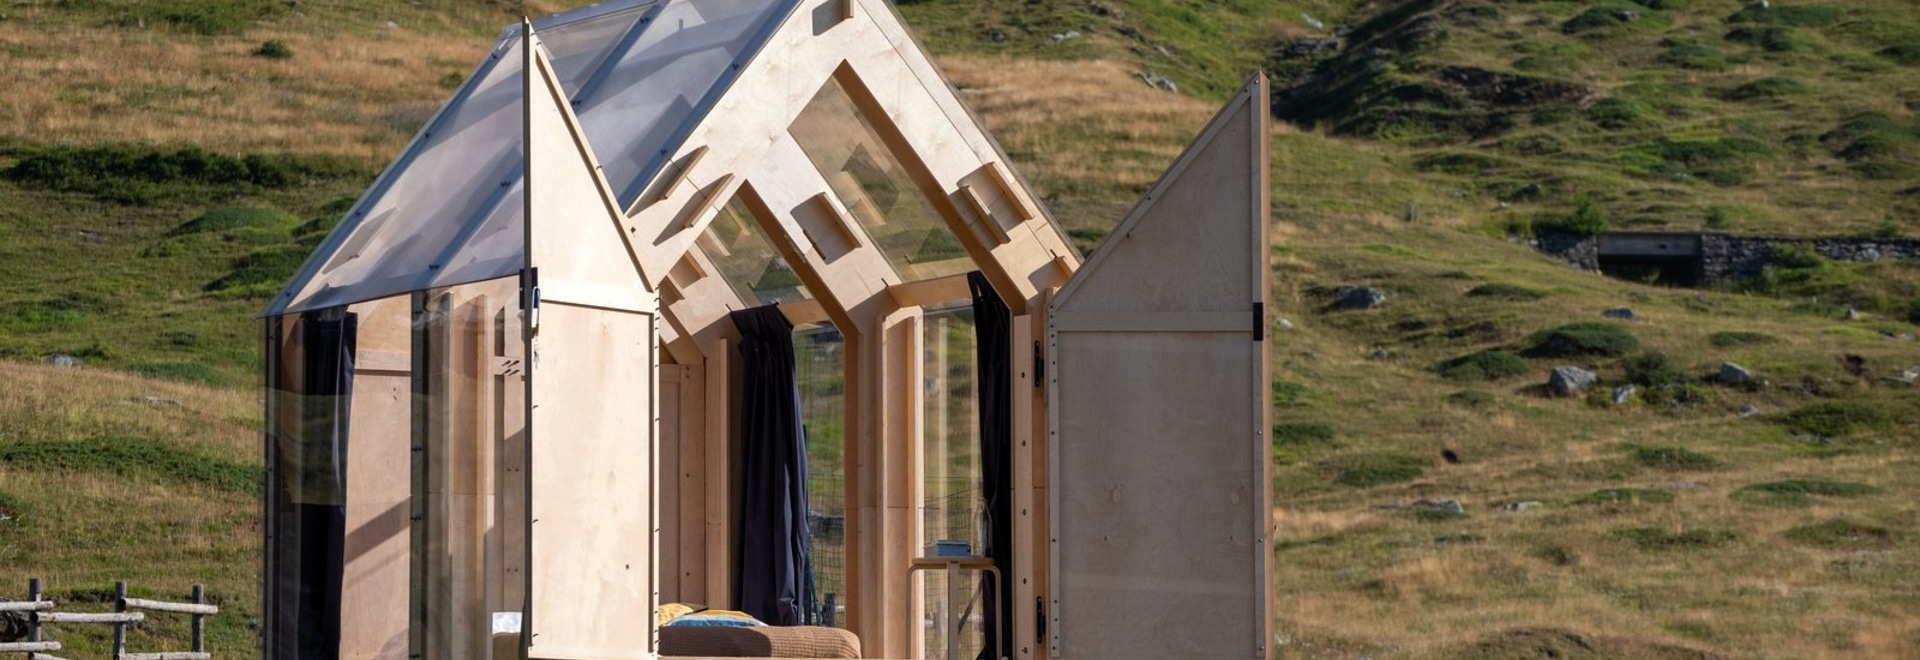 "Birch plywood panels, full-height windows, and a transparent roof compose ""Immerso Glamping"" set in the Italian alpine town of Usseaux."